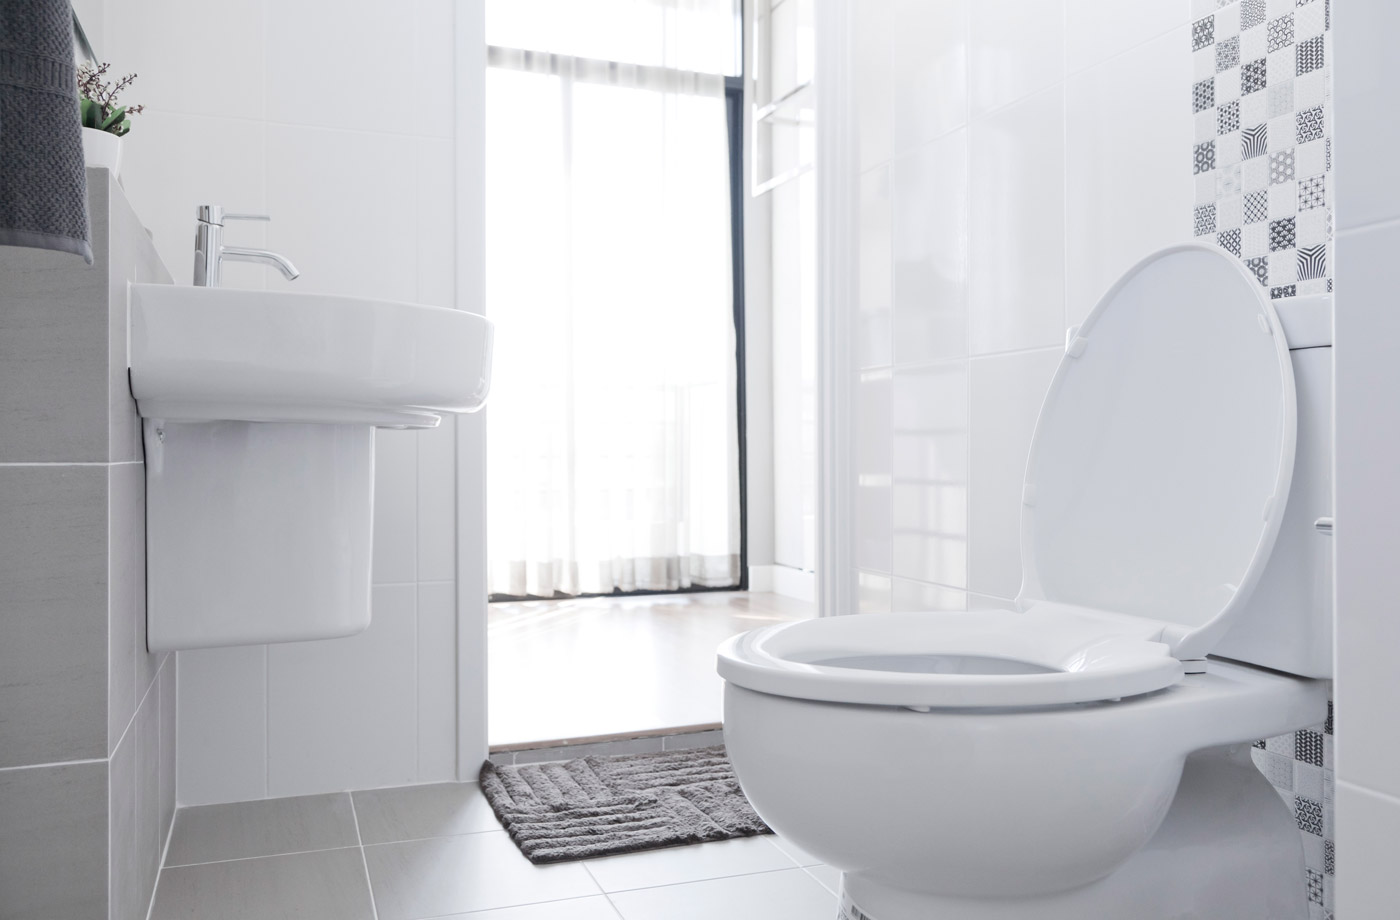 Thumbnail for What You Need to Know About COVID-19 and the Toilet, According to a New Study